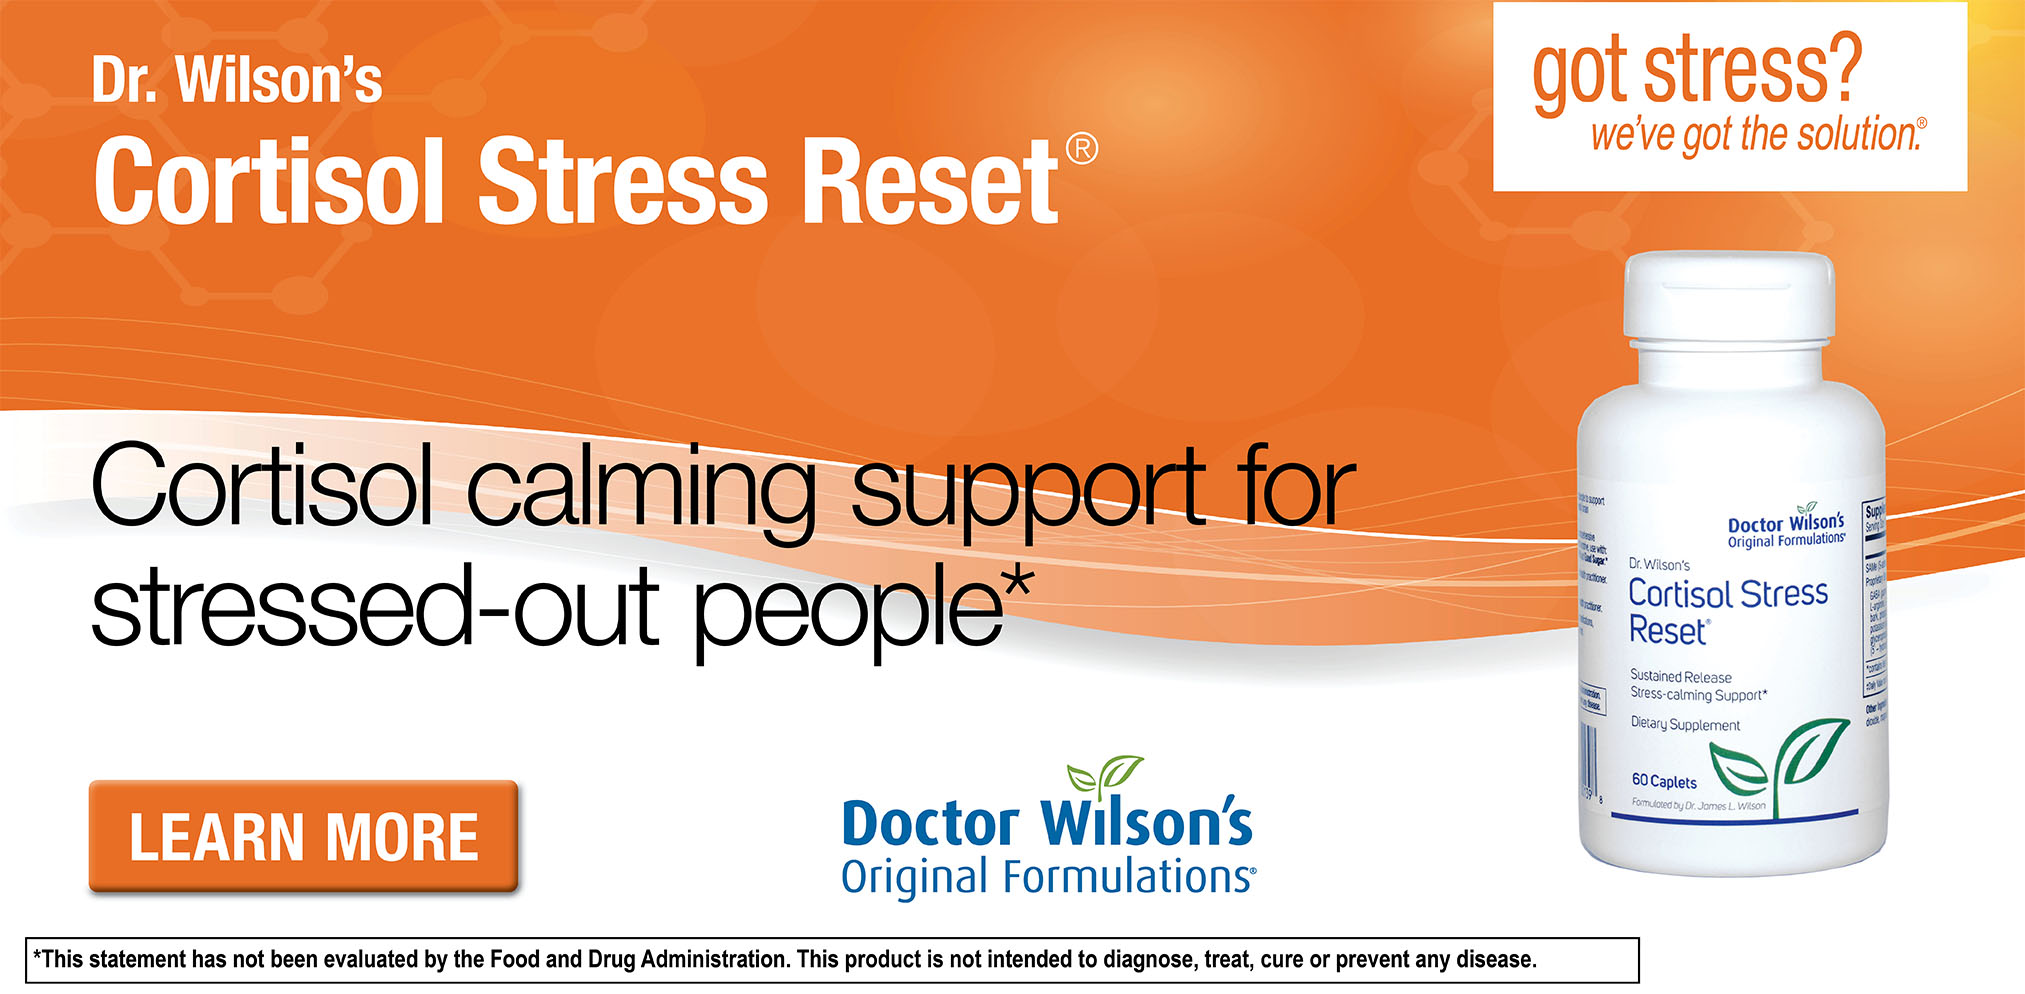 Dr. Wilson's Cortisol Stress Reset